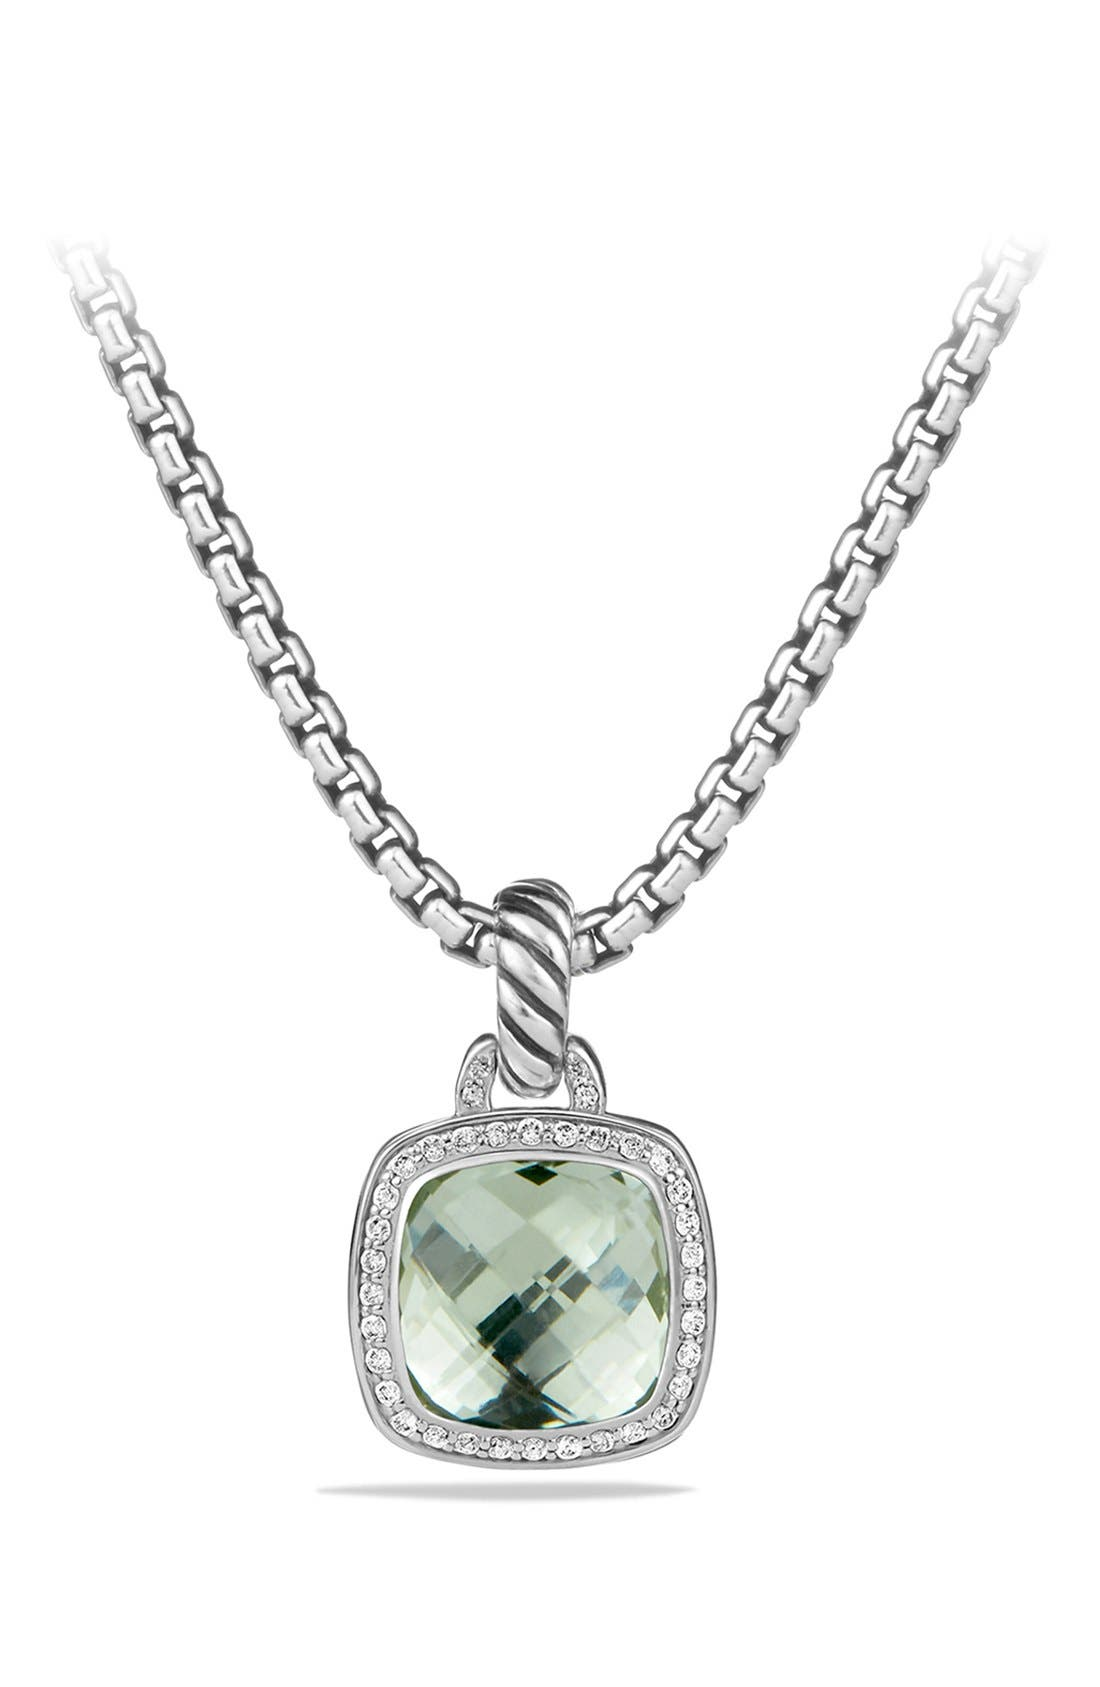 David Yurman 'Albion' Pendant and Diamonds